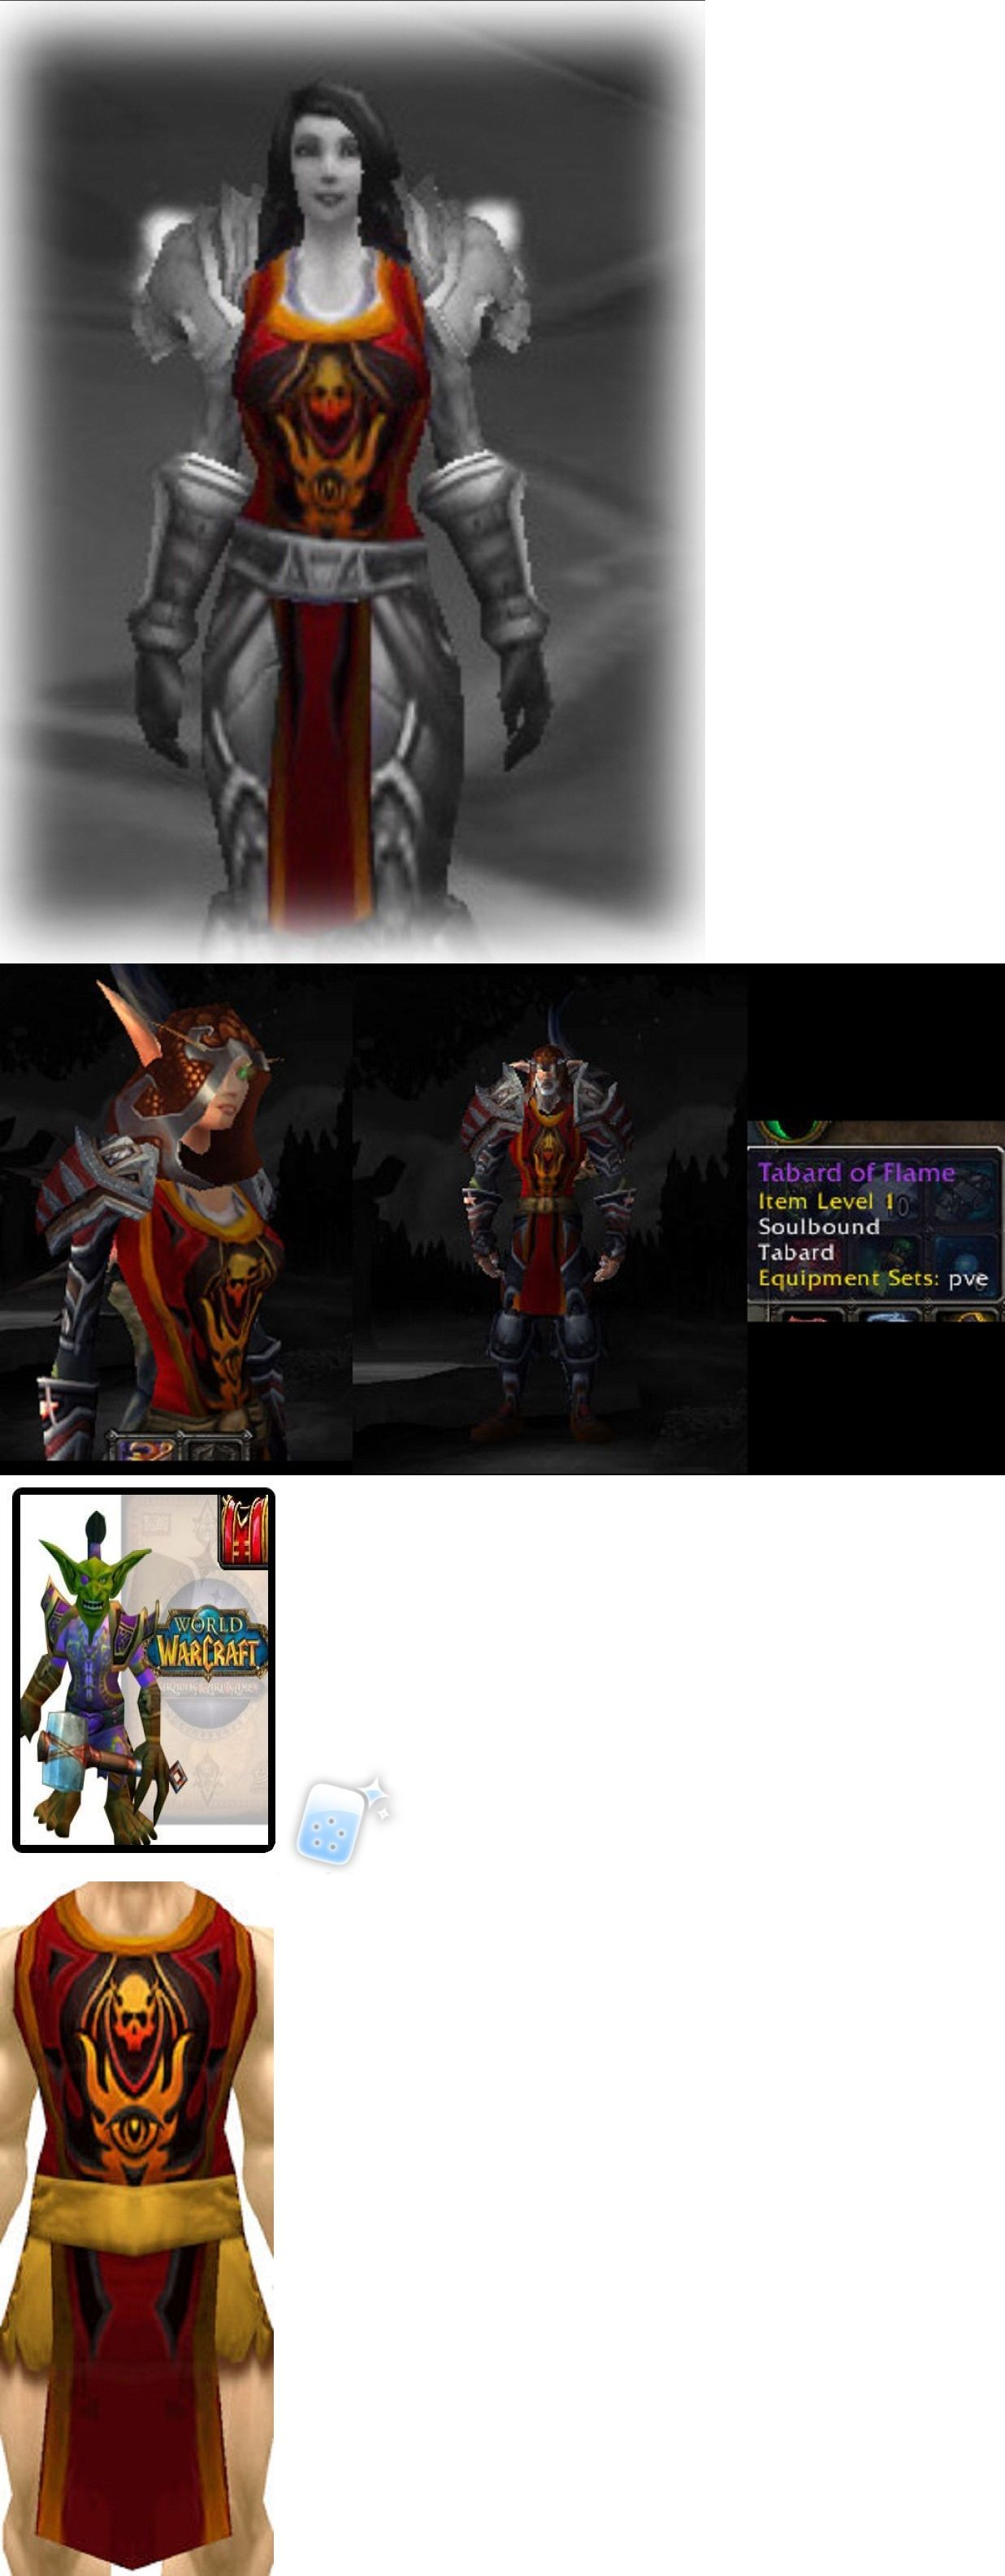 ** TABARD OF THE FLAME RED ** WORLD OF WARCRAFT LOOT from TCG Landro Longshot